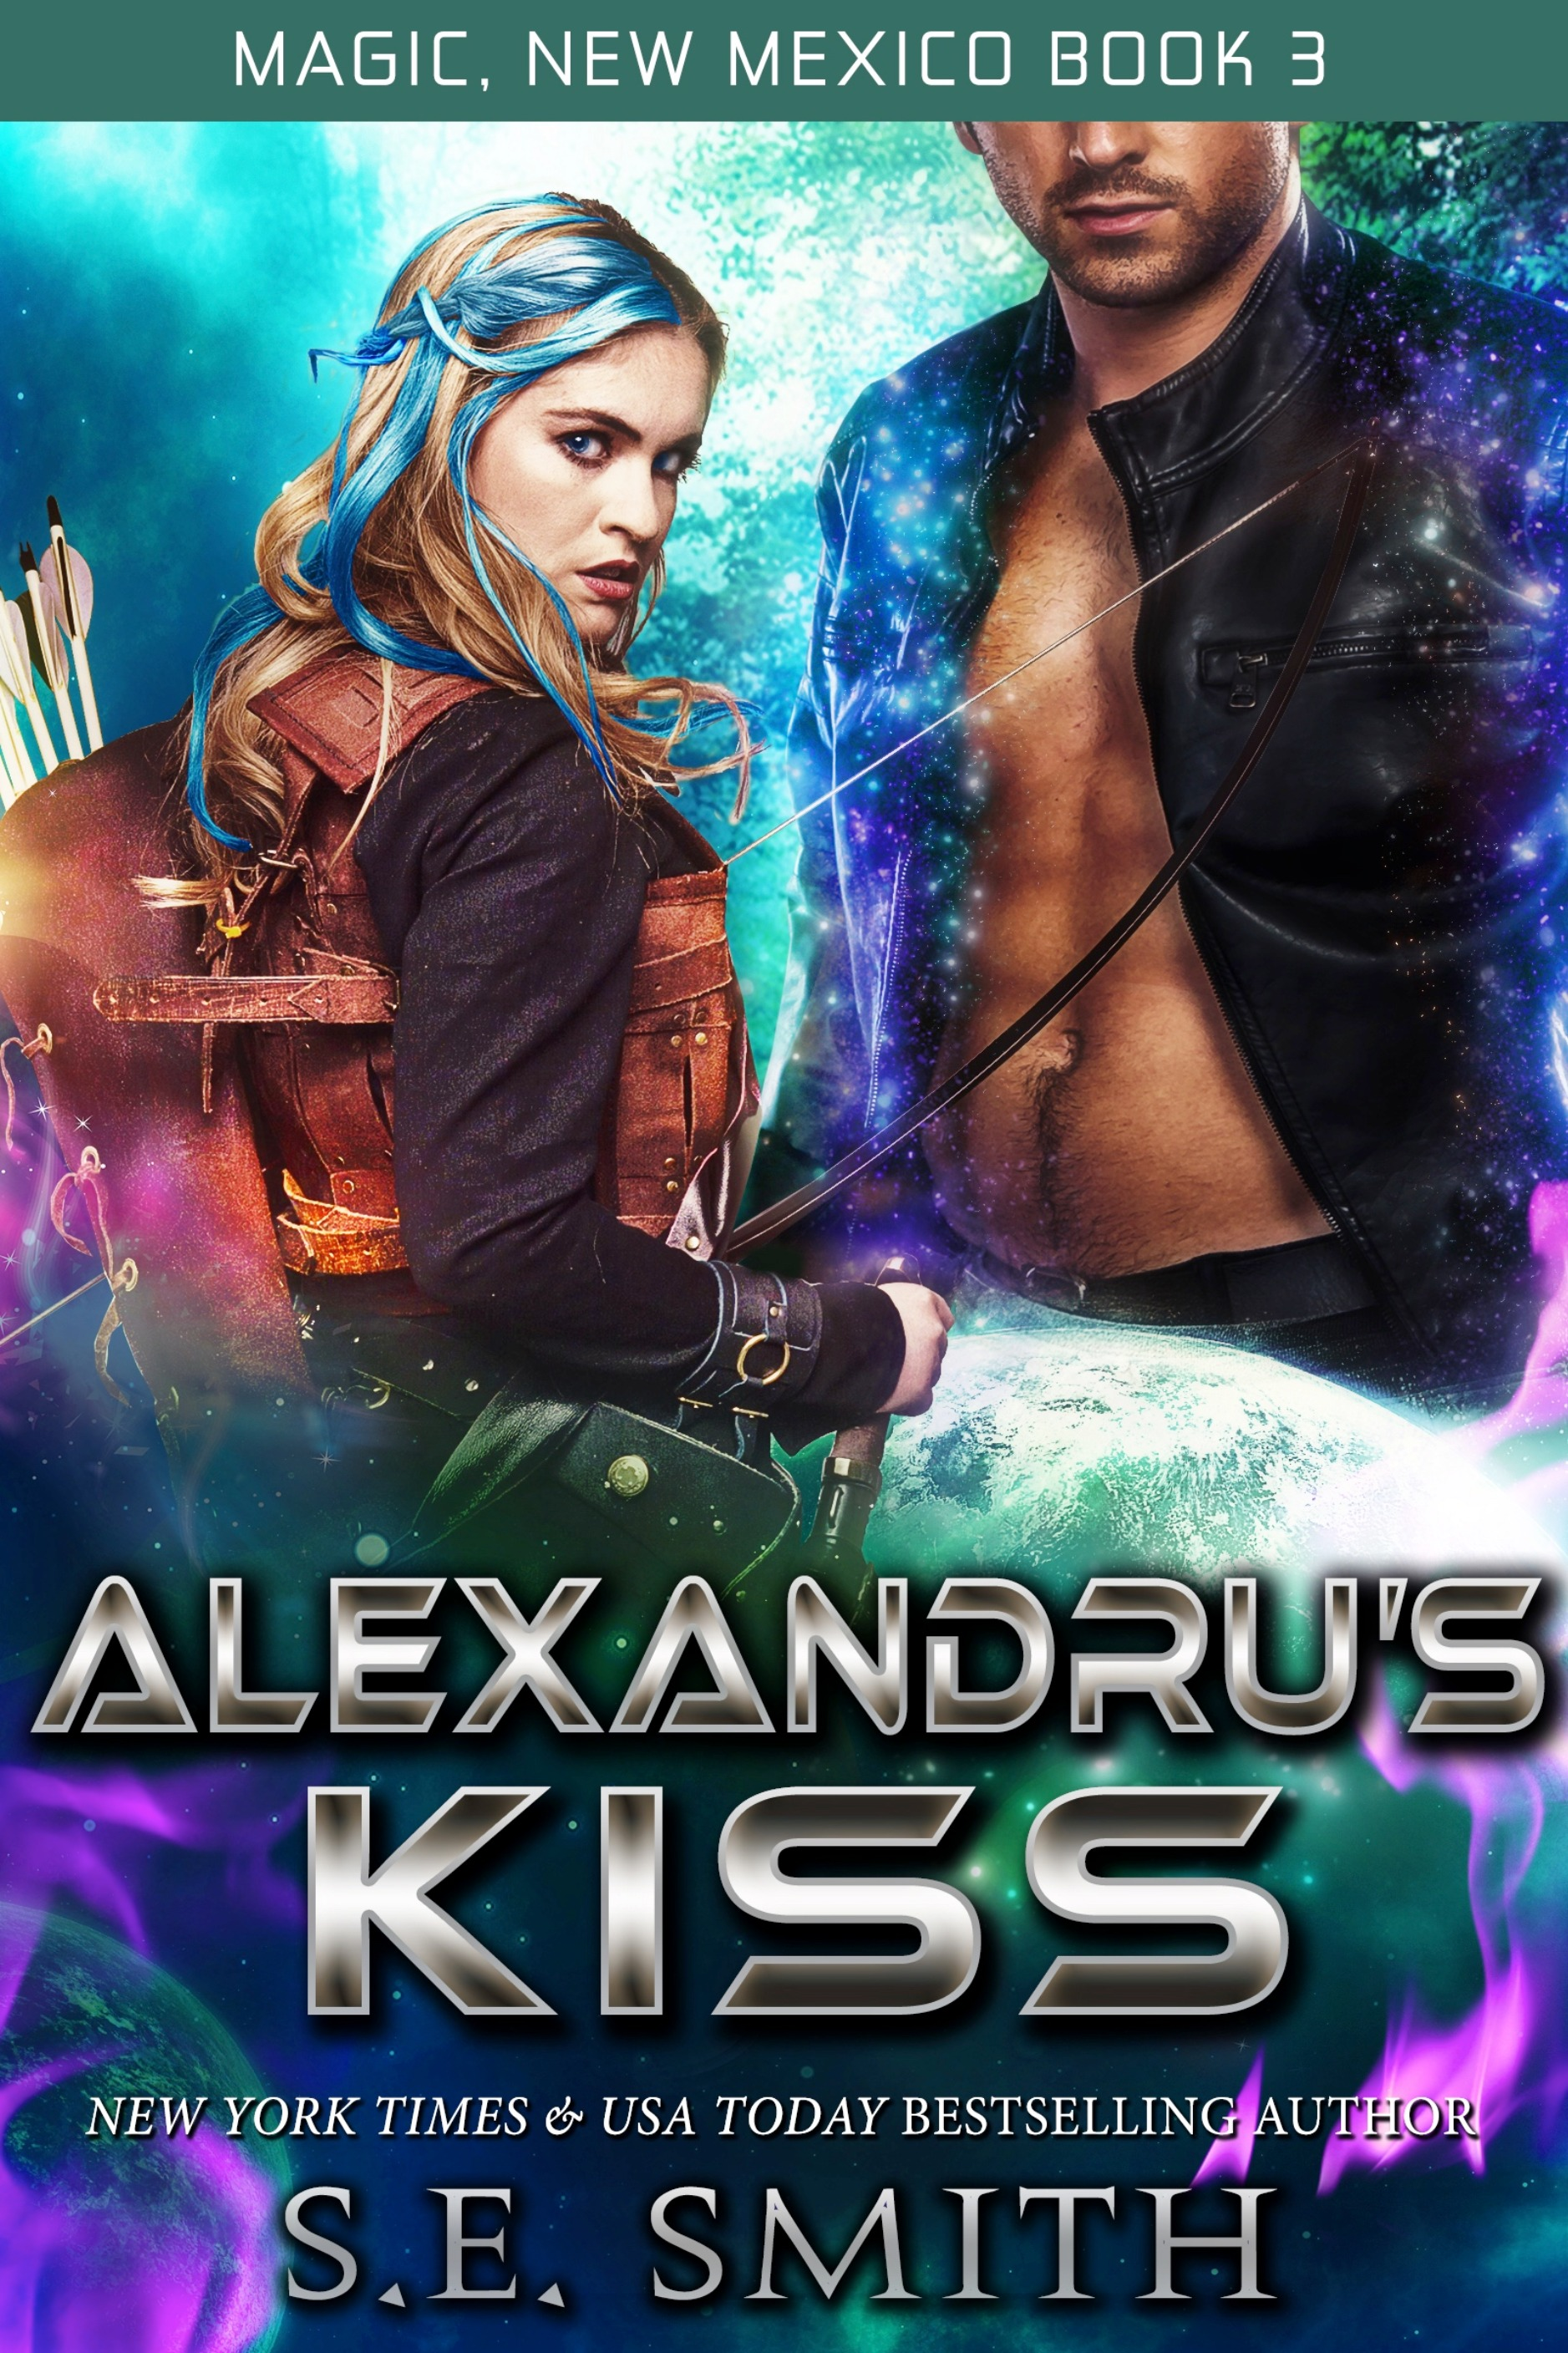 Alexandru's Kiss: Magic, New Mexico Book 3 (ebook: Kindle and epub)